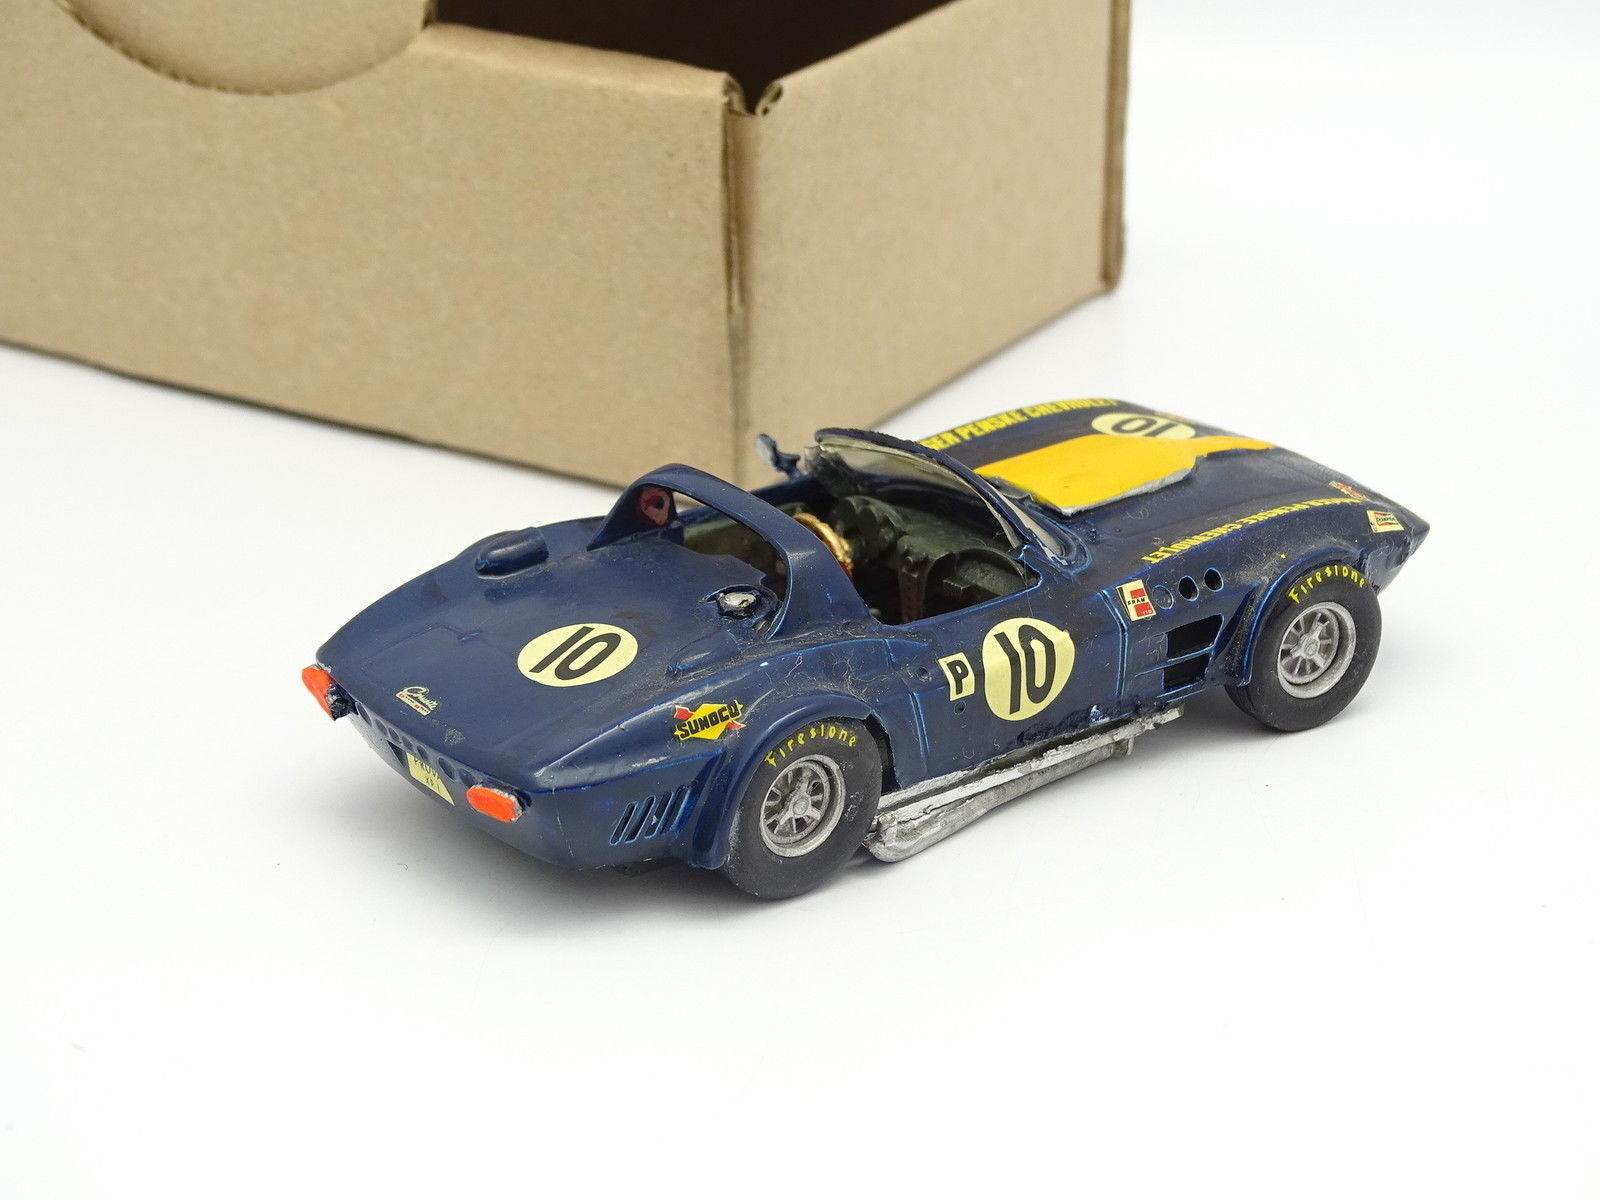 Marsh Models Kit Métal Monté SB 1 1 1 43 - Chevrolet Corvette Grand Sport Pensk 1963 23ff73